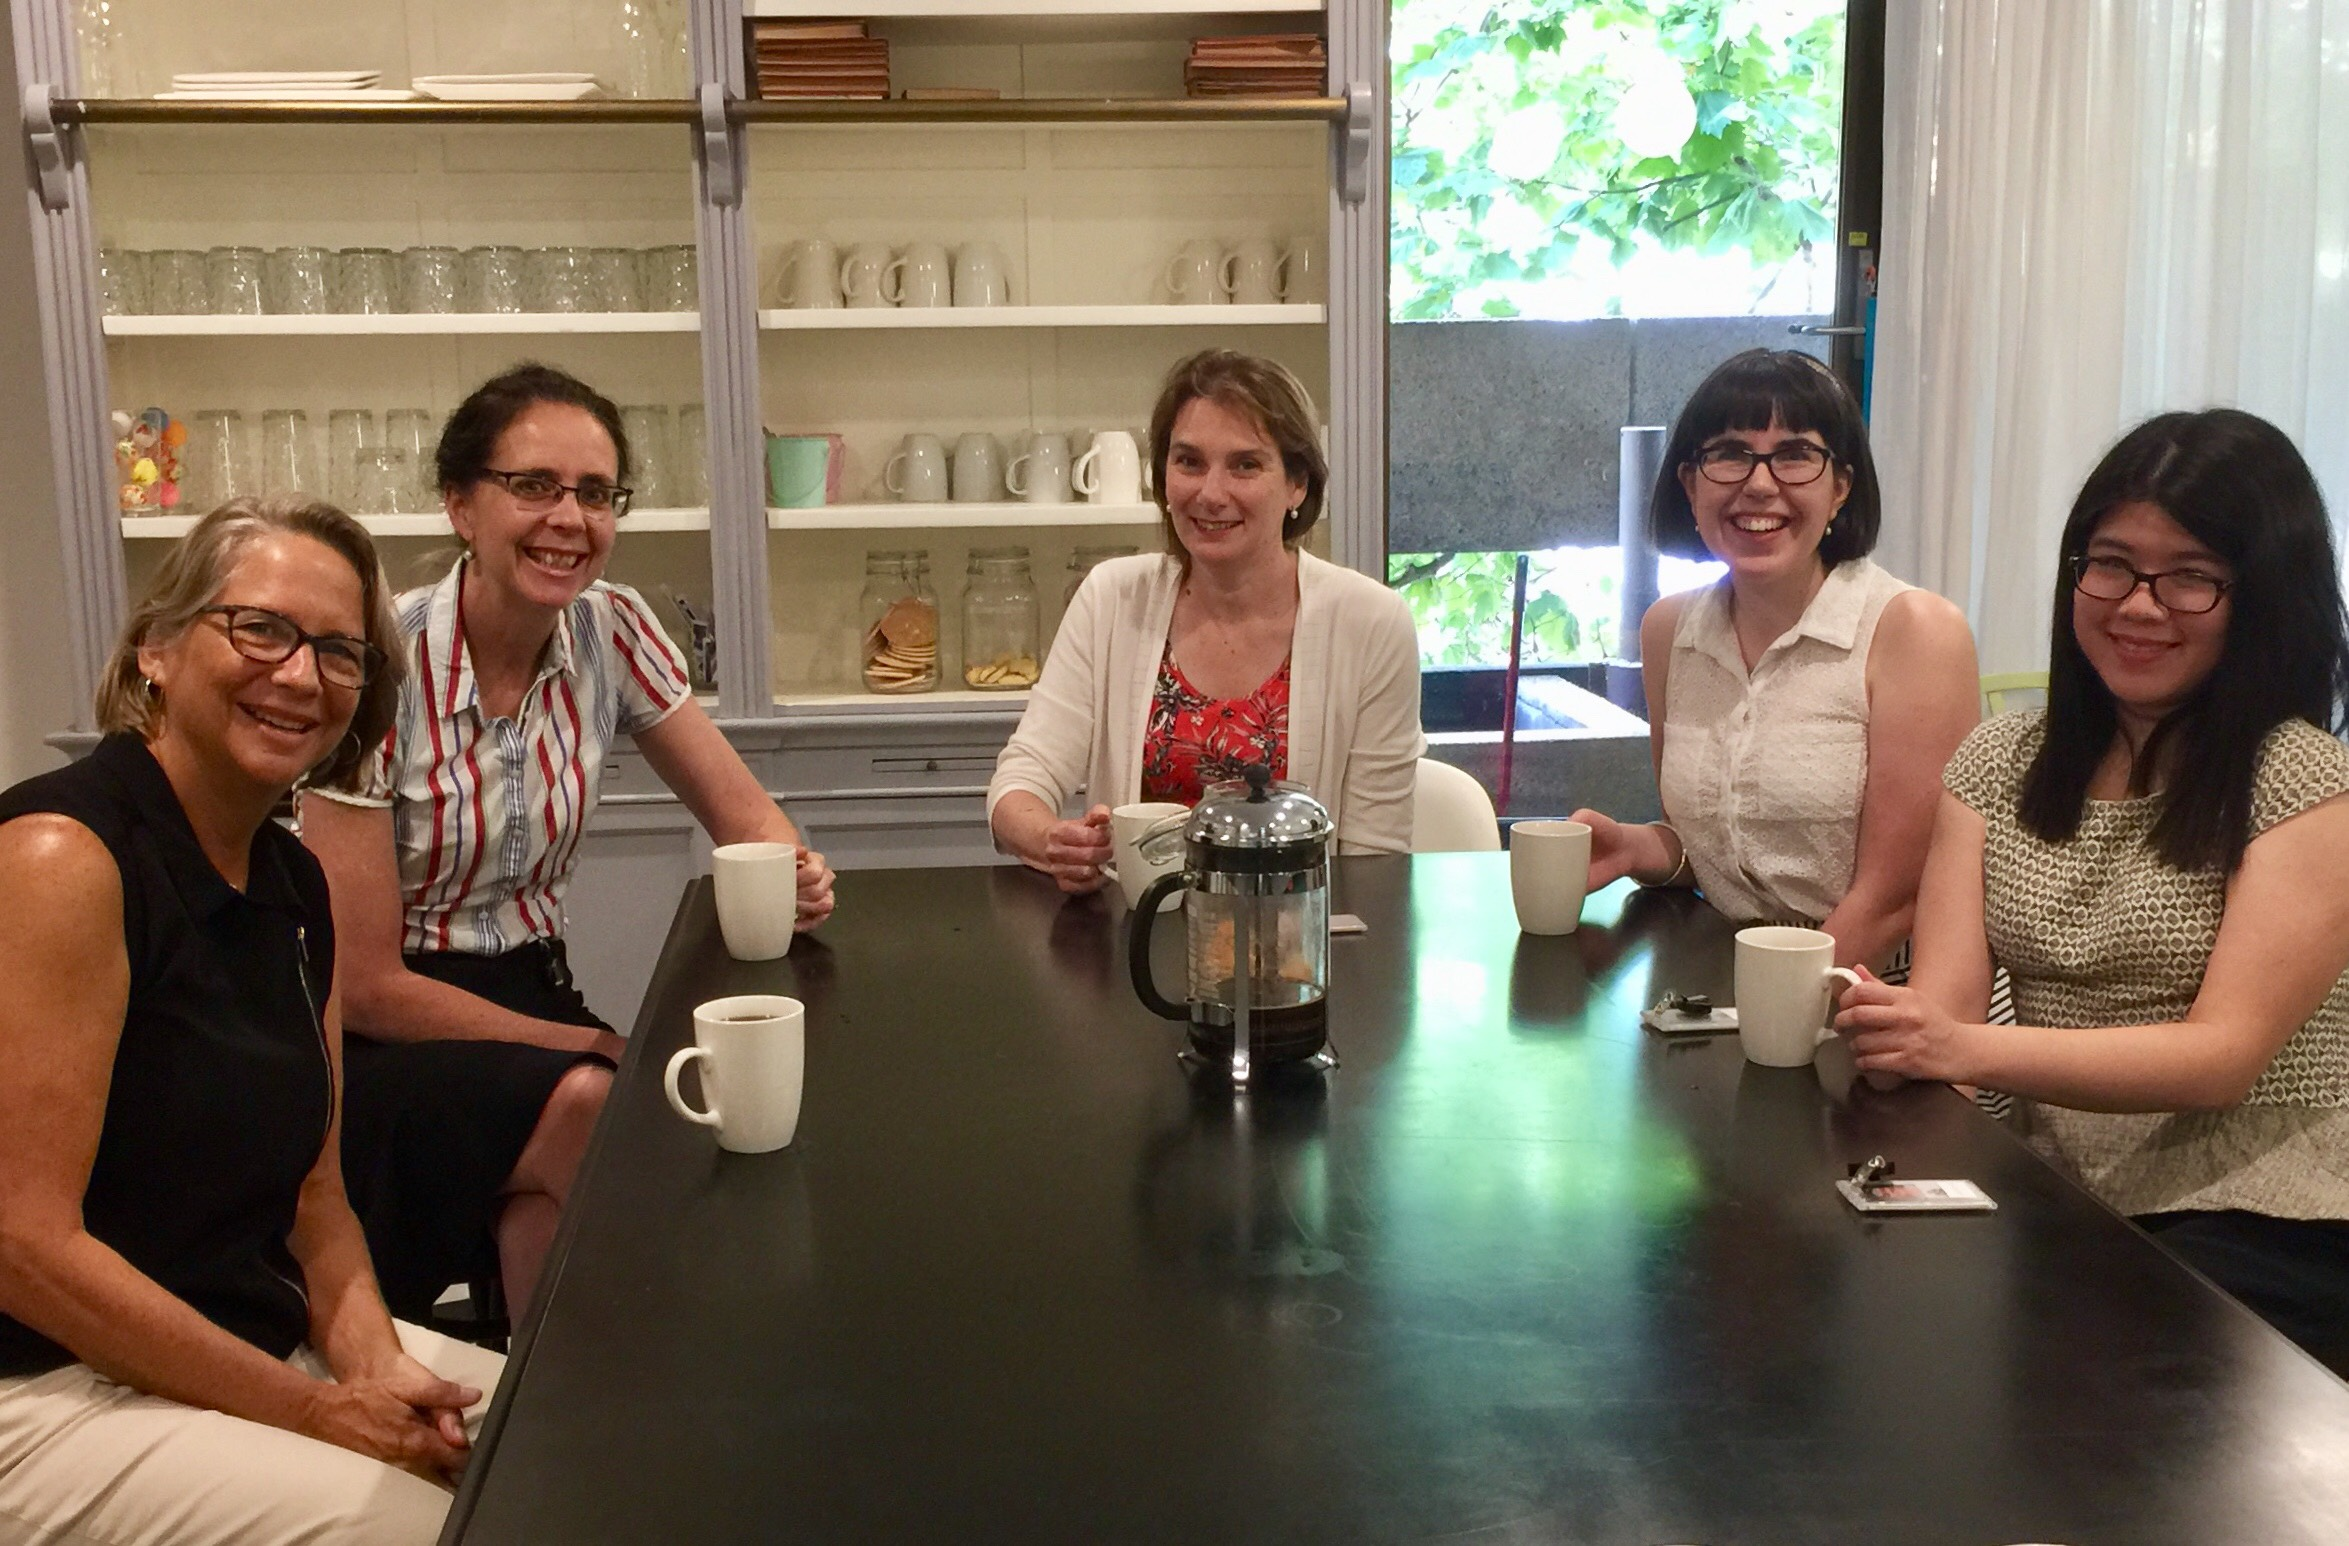 Our ADM Summer Fellows (l eft to right) : Jo Kadlecek, Robyn Wrigley-Carr, Lyn Kidson, Brooke Scriven and Christine Poon.